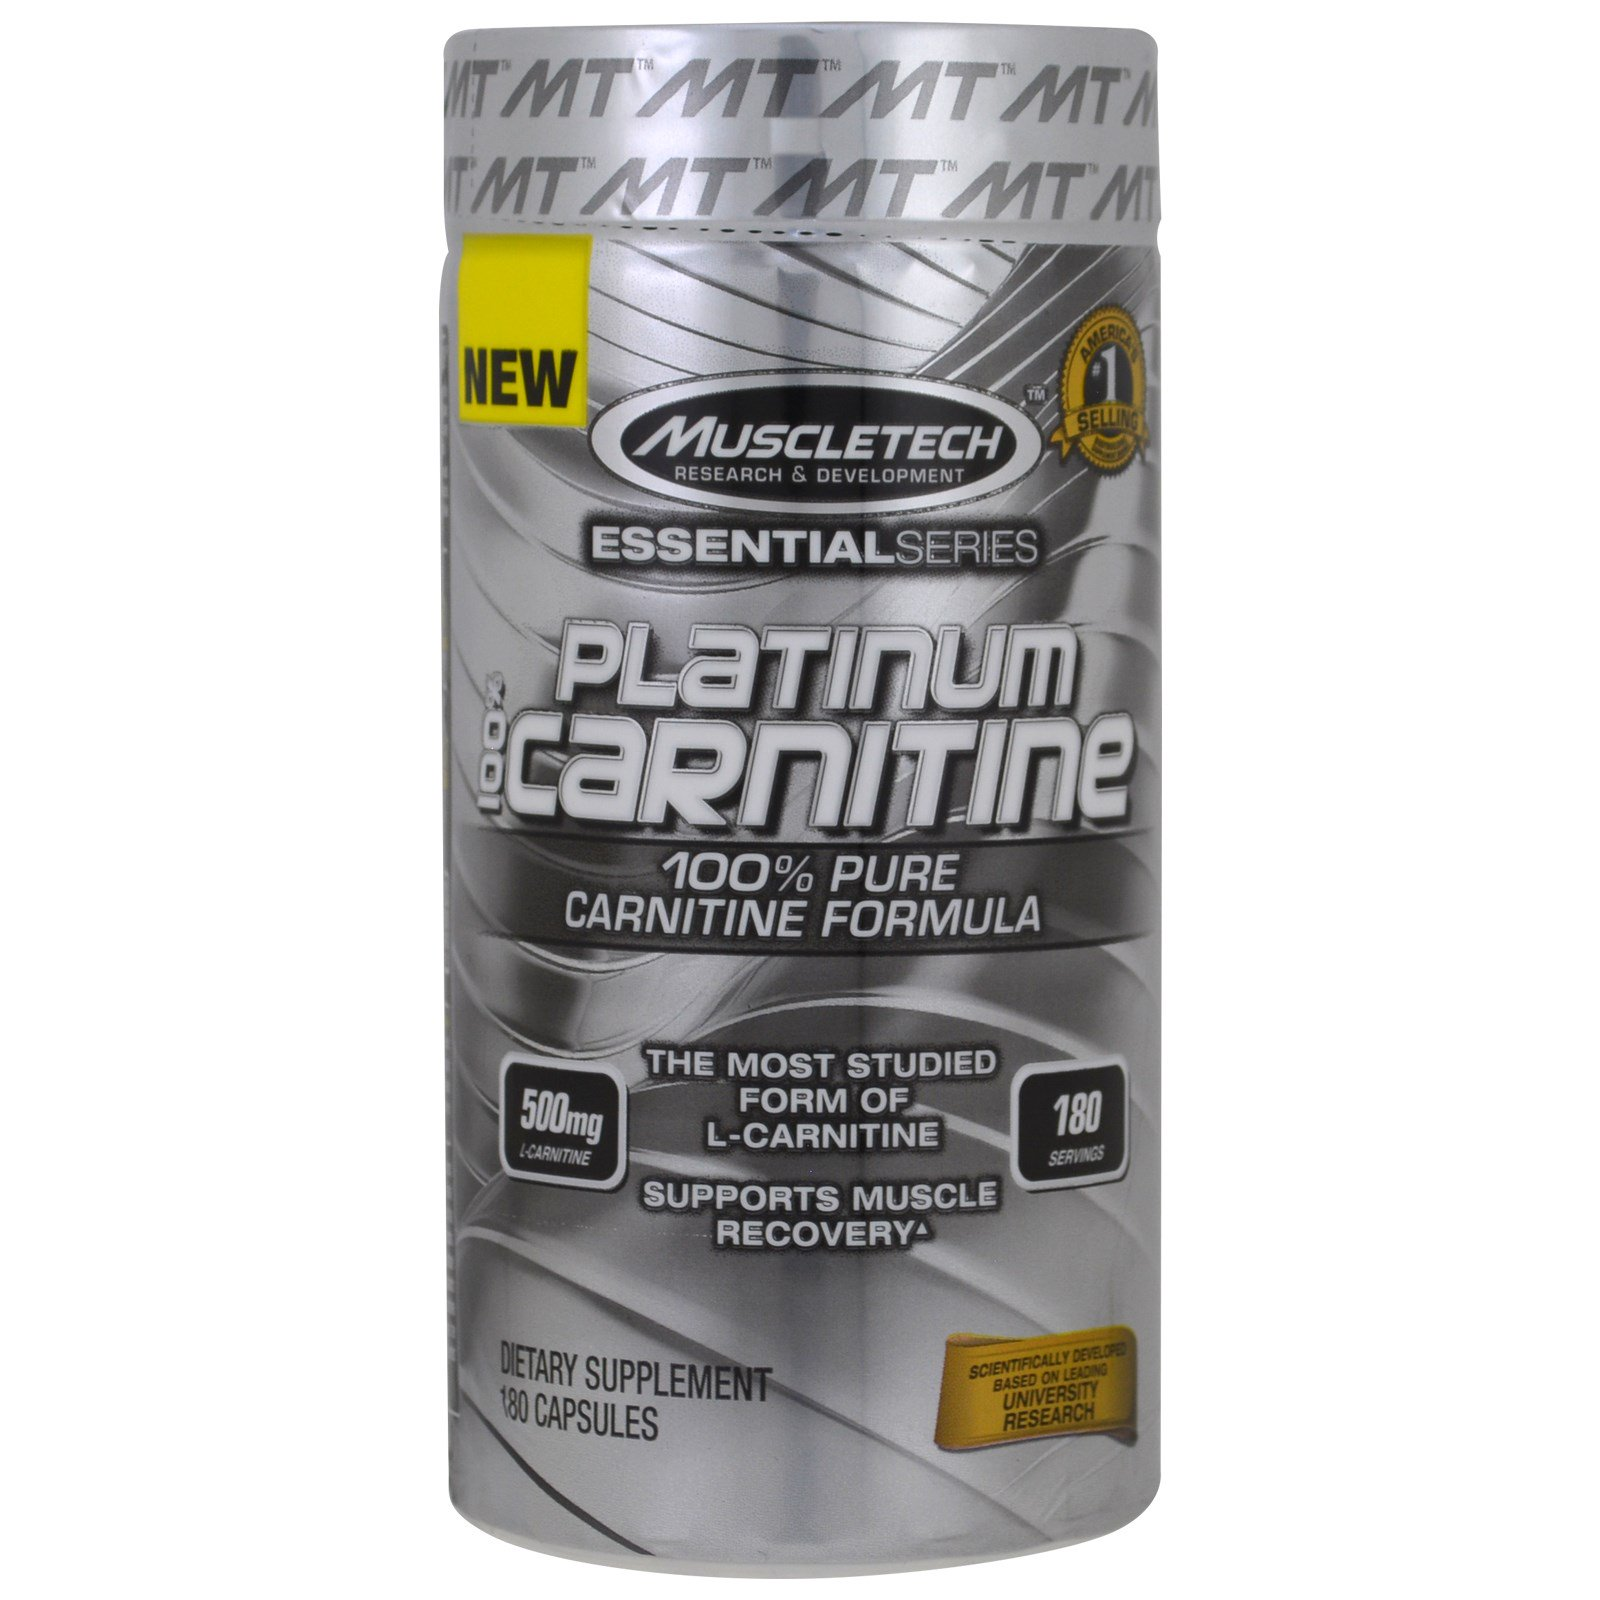 Muscletech Platinum 100 Carnitine 180 Capsules Un Ultimate Nutrition Ultra Ripped Fast Acting Formula Cap